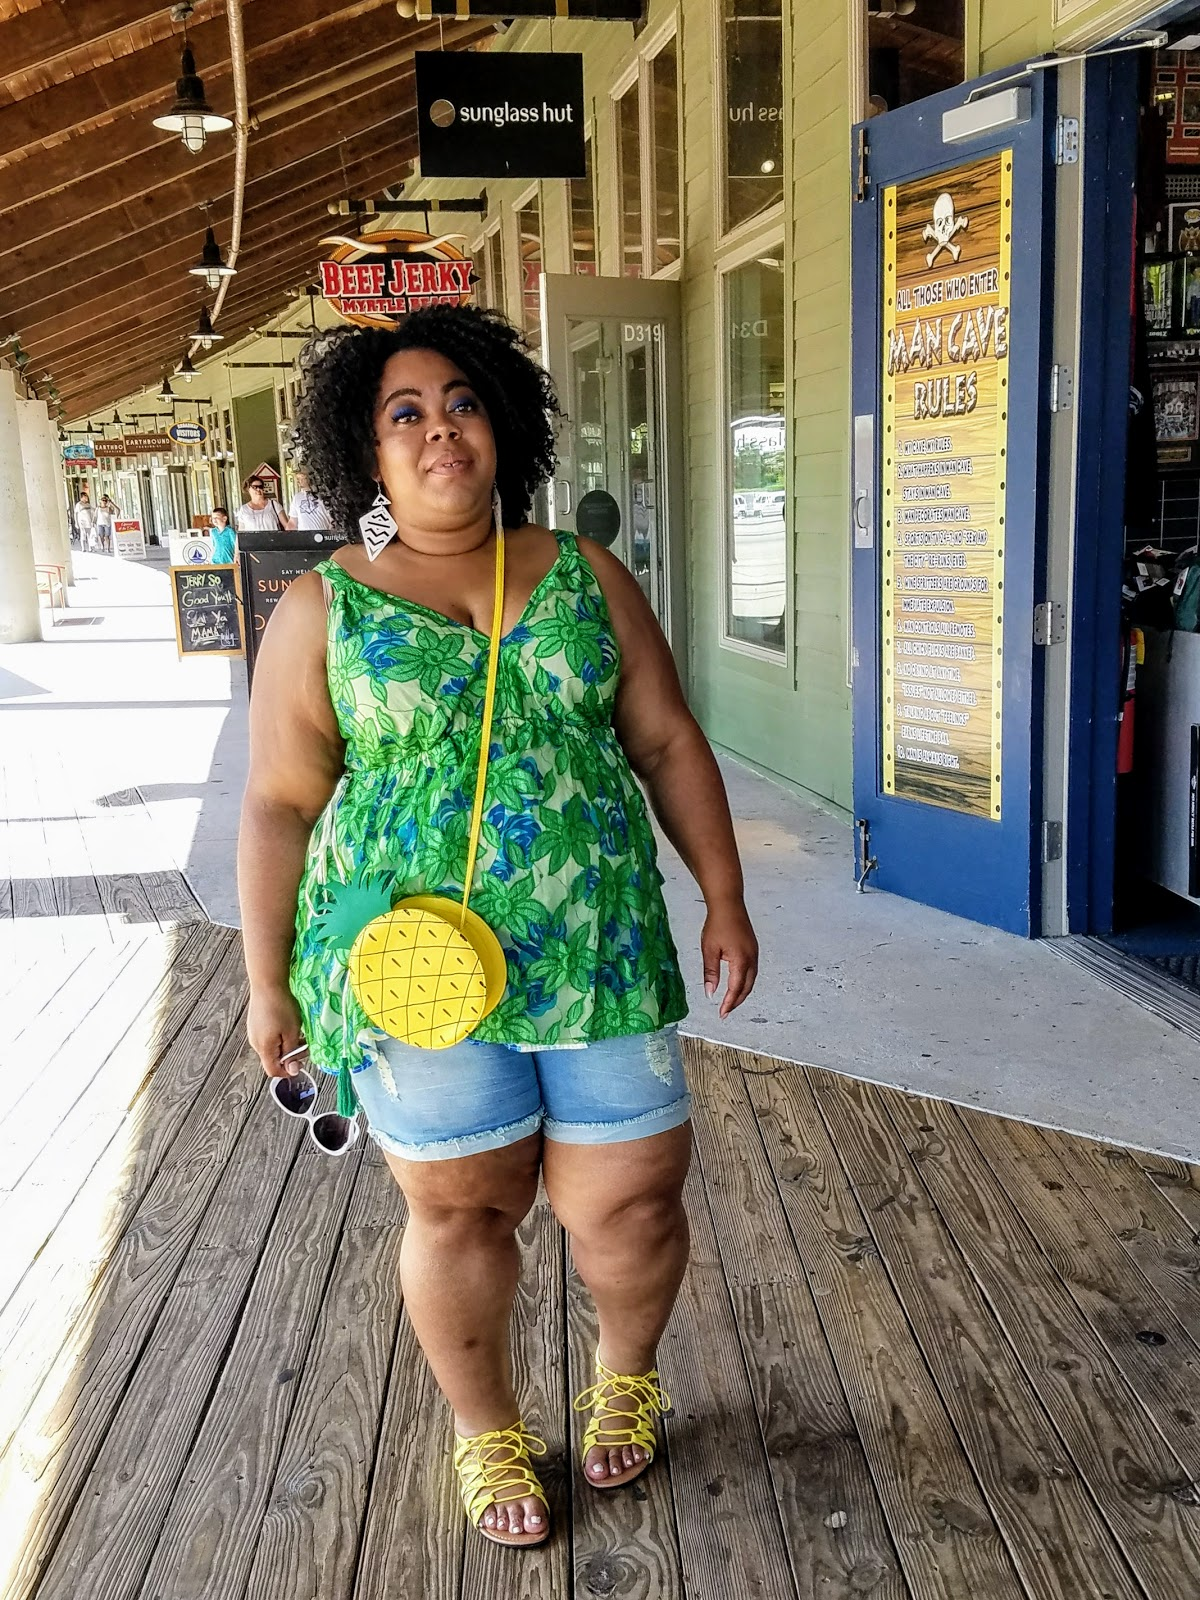 plus size, blogger, Lane Bryant, shorts, sandals, crossbody purse, natural hair, bold makeup, natural hair, fashion sunglasses, Myrtle Beach (Broadway at the Beach)